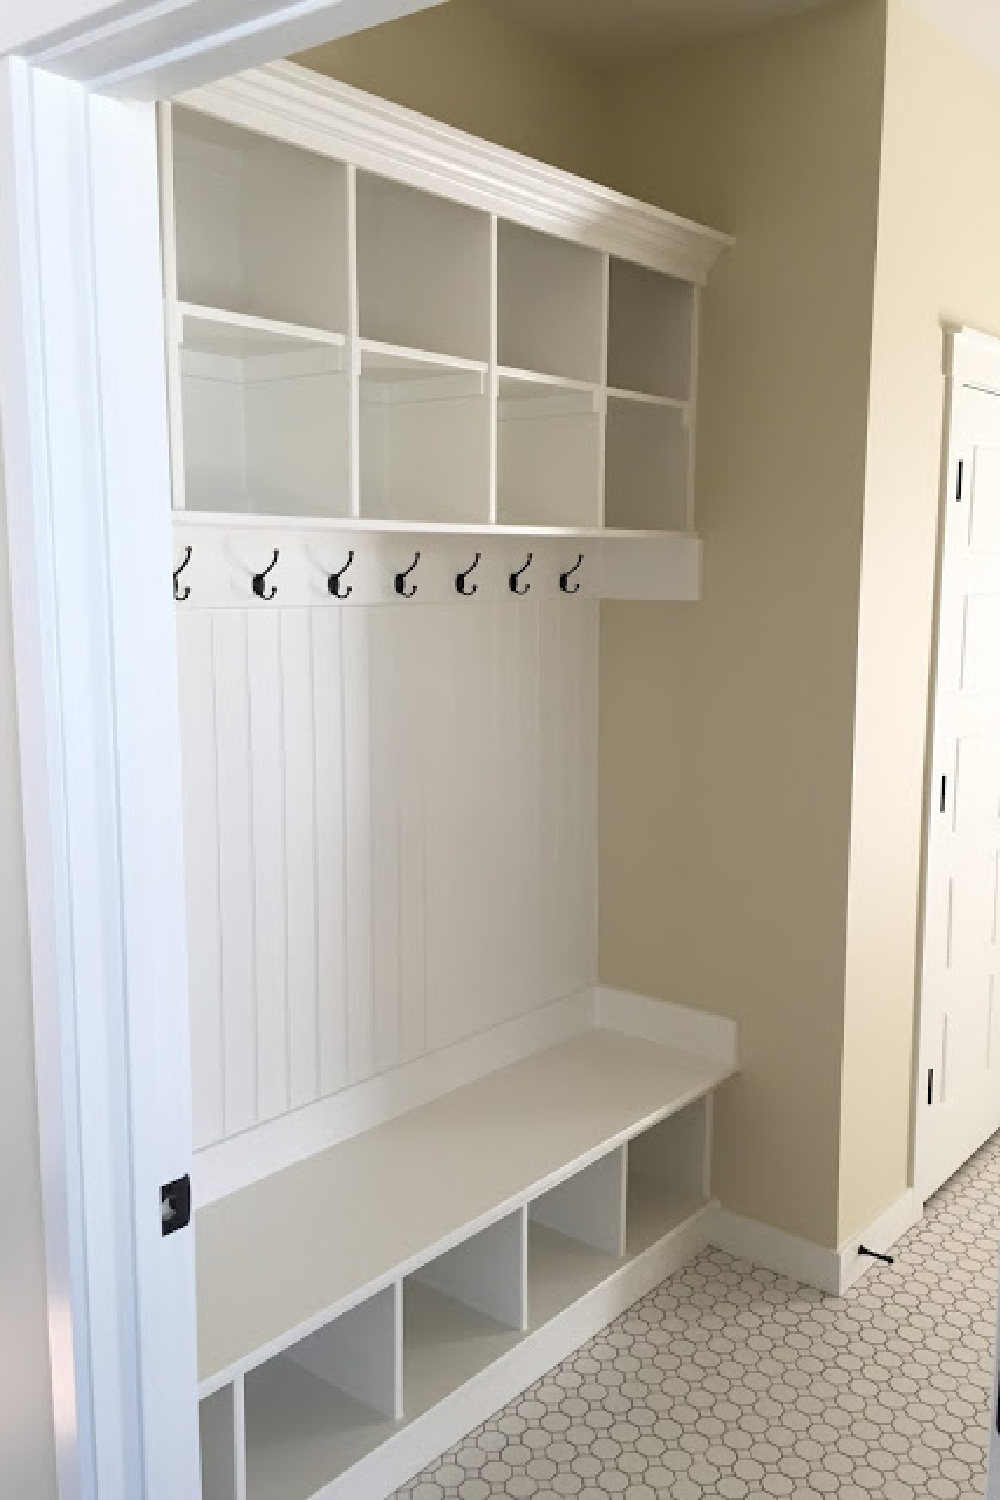 PPG Delicate White paint color on built-ins in a mud room by designer Andrea West. #delicatewhite #paintcolors #mudroom